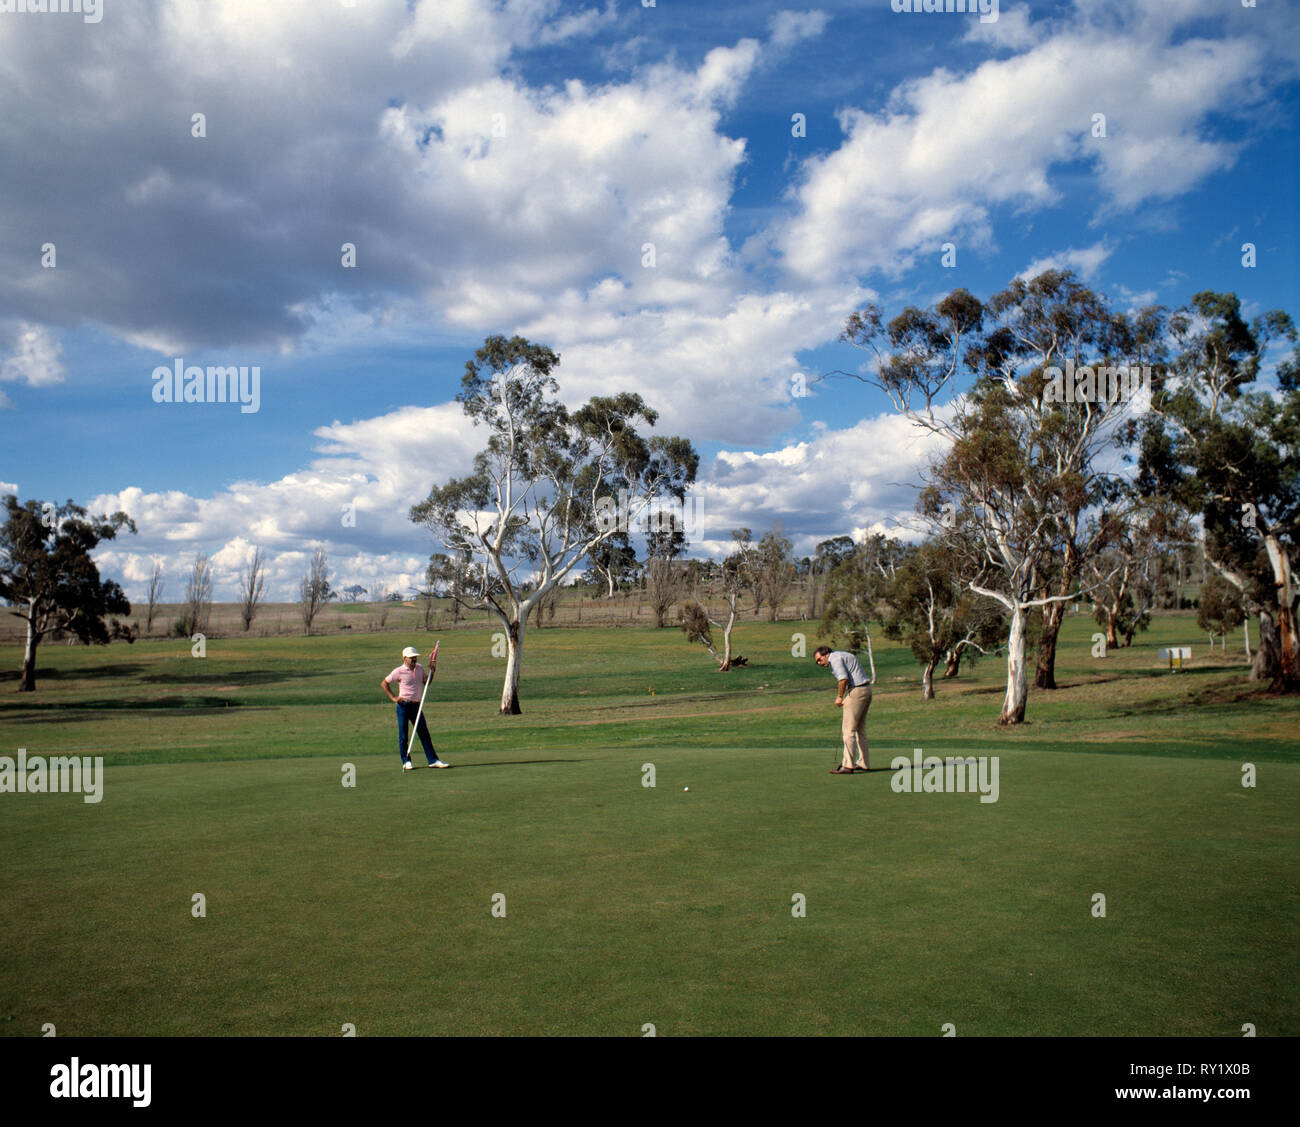 Australia. New South Wales. Snowy Mountains. Cooma golf course. Two men on putting green. - Stock Image